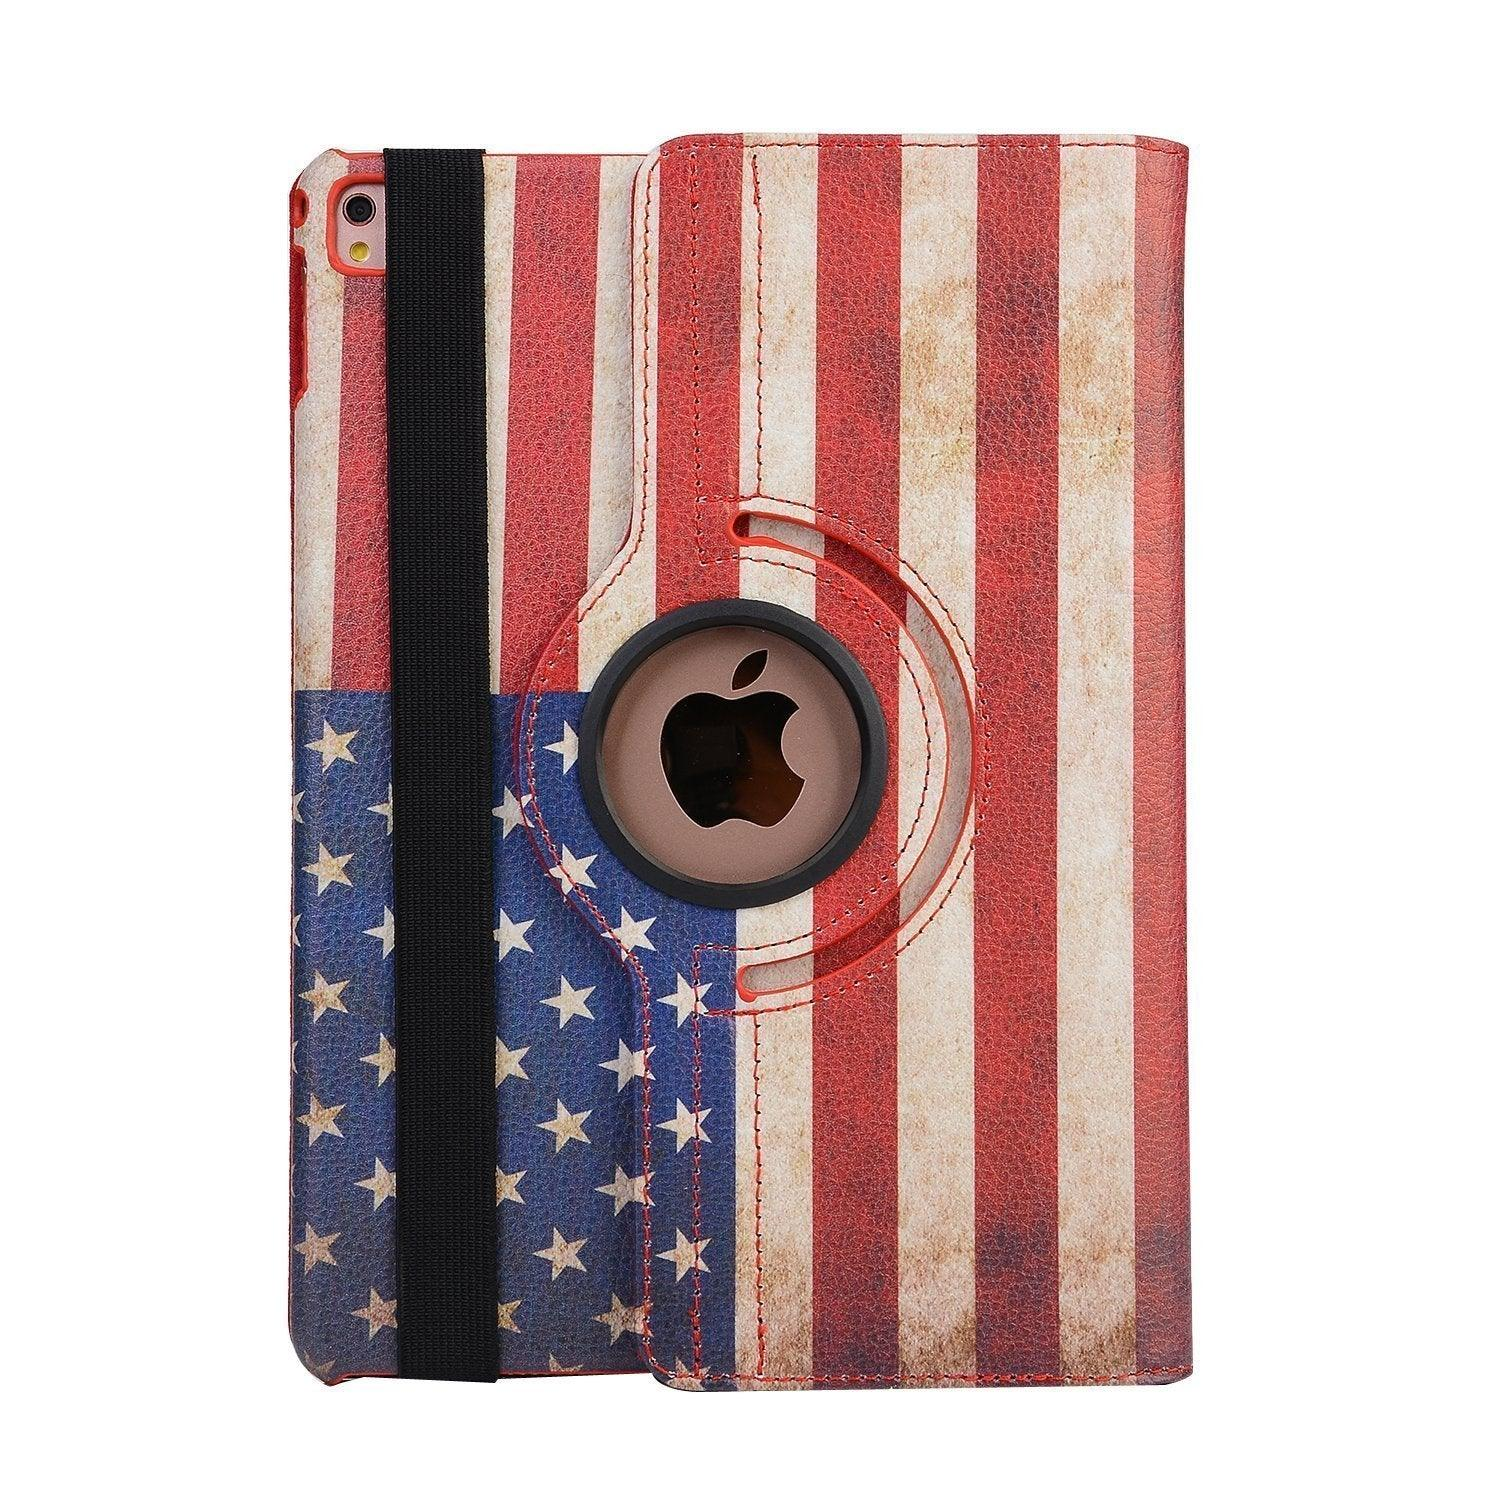 Apple iPad Air 1st / A1474 / A1475 Tablet PU Leather Folio 360 Degree Rotating Stand Case by Modes